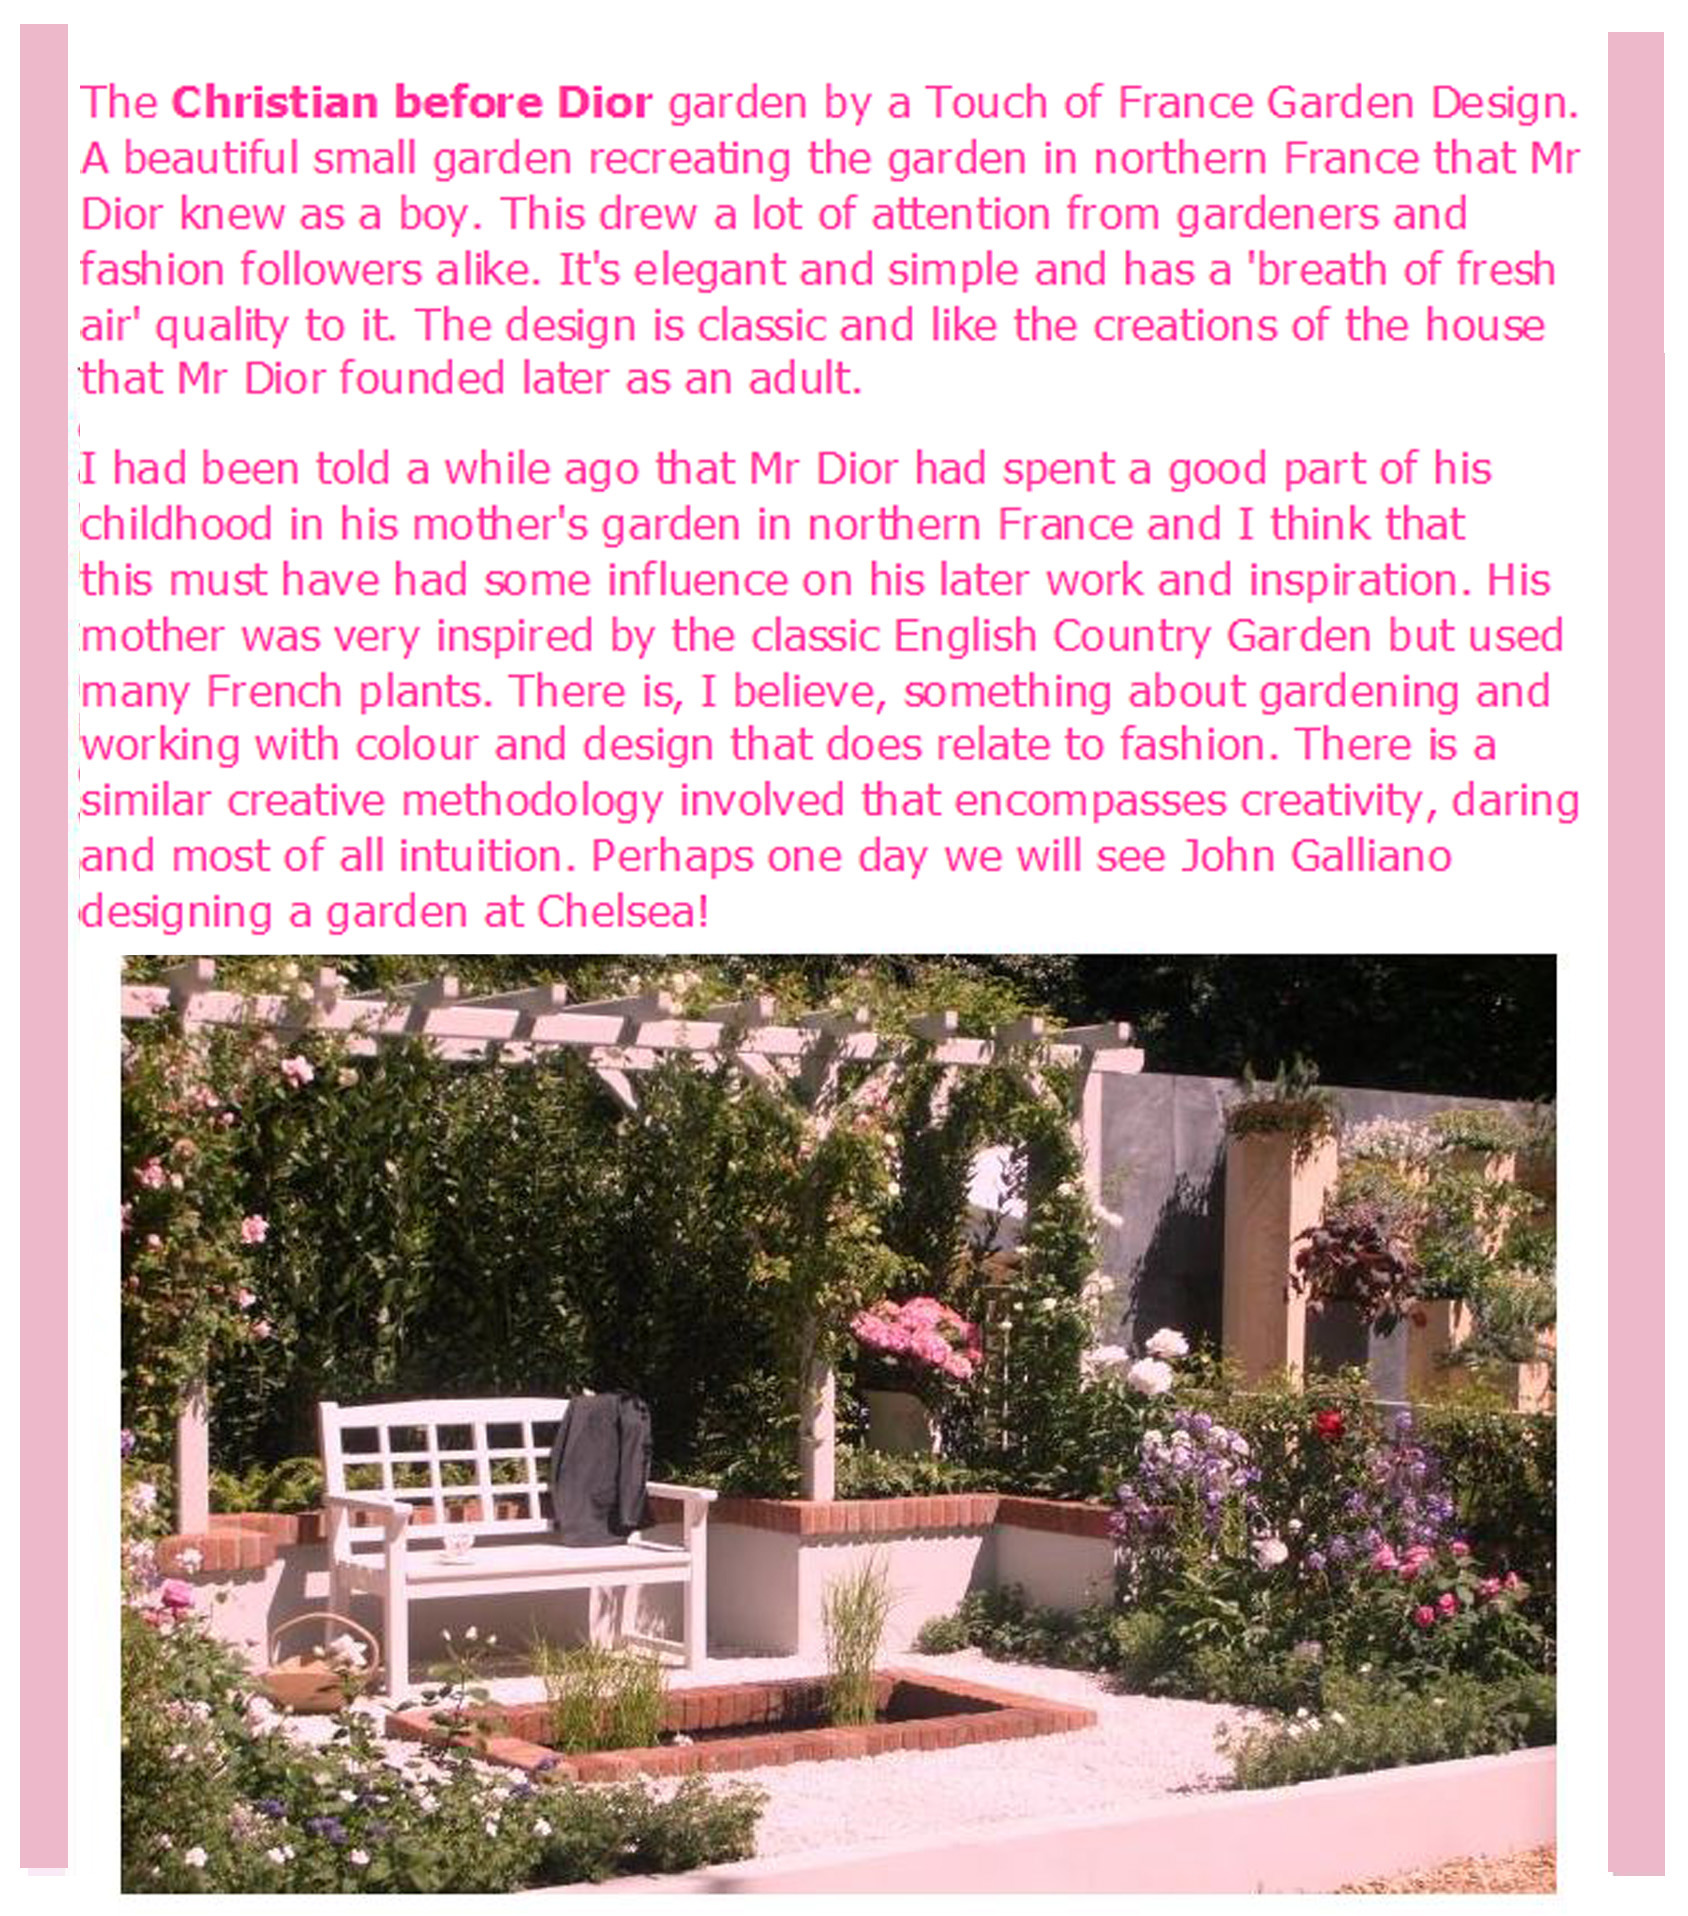 A blush of rose article